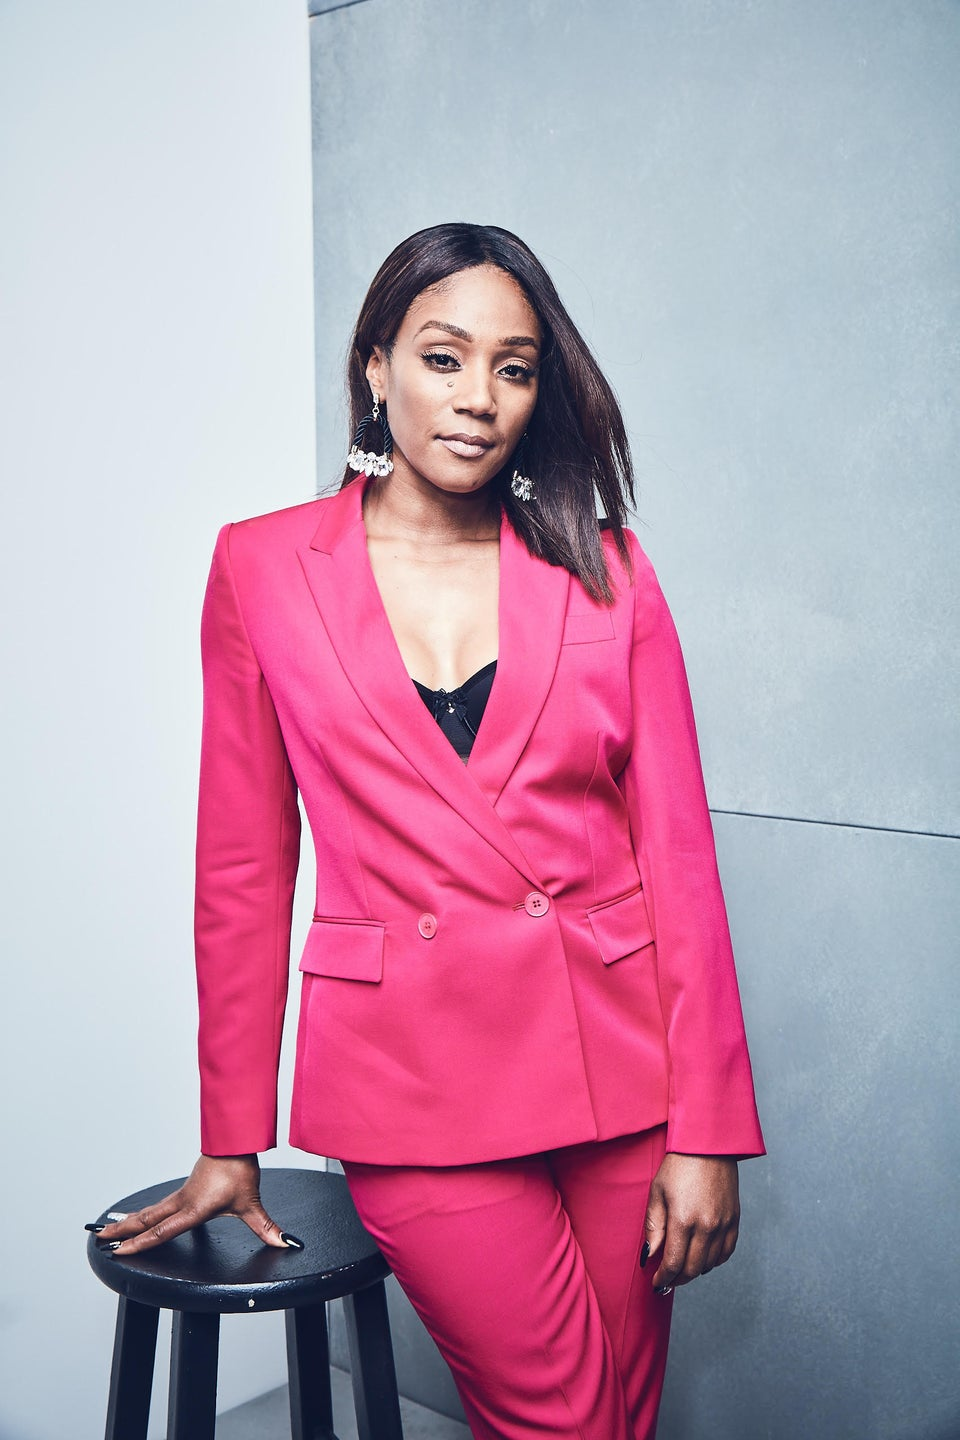 Girls Trip Star Tiffany Haddish On A Possible Sequel And Why She Still Uses Groupon